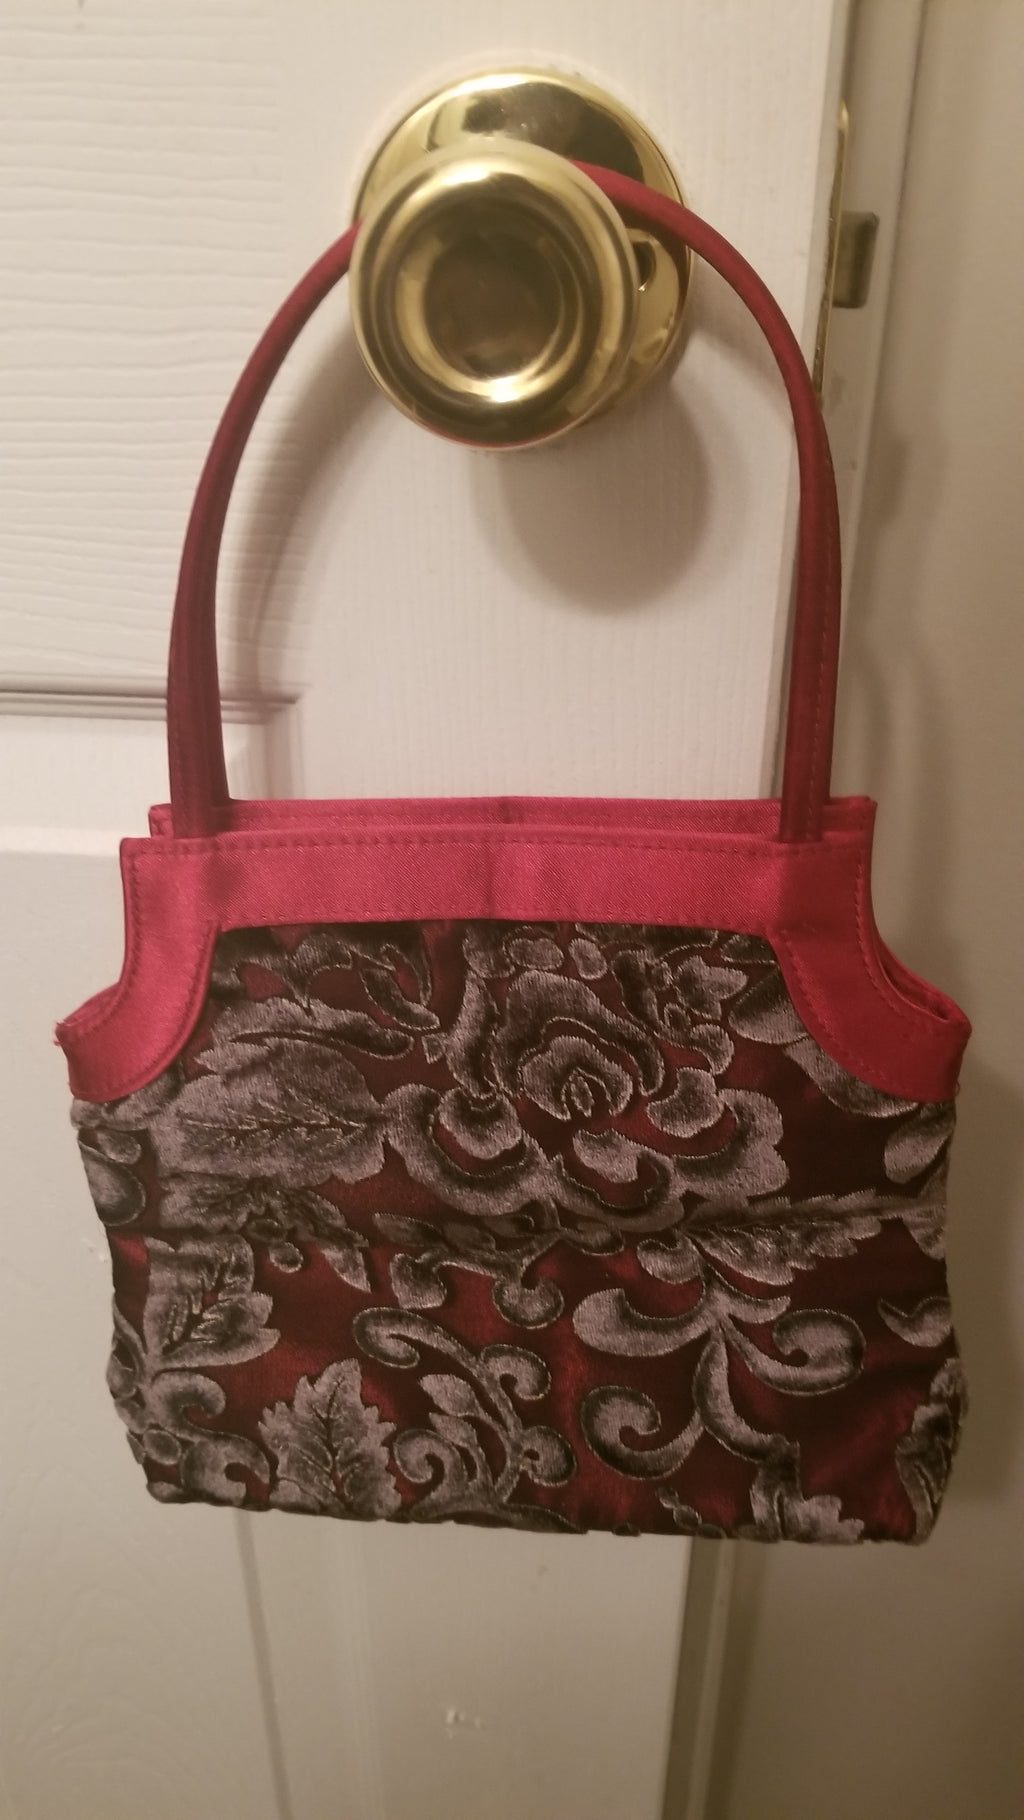 Victoria's Secret floral cut velvet satin evening handbag